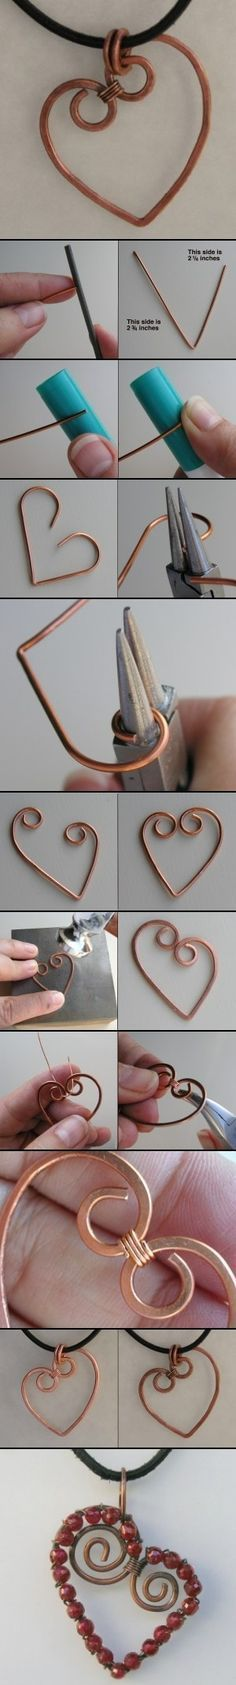 How to make a heart pendant with wire ** DIY Tutorial ** Como hacer un dije de corazon con alambre Copper Jewelry, Wire Jewelry, Beaded Jewelry, Handmade Jewelry, Diy Jewellery, Jewlery, Jewellery Making, Tanishq Jewellery, Dress Jewellery